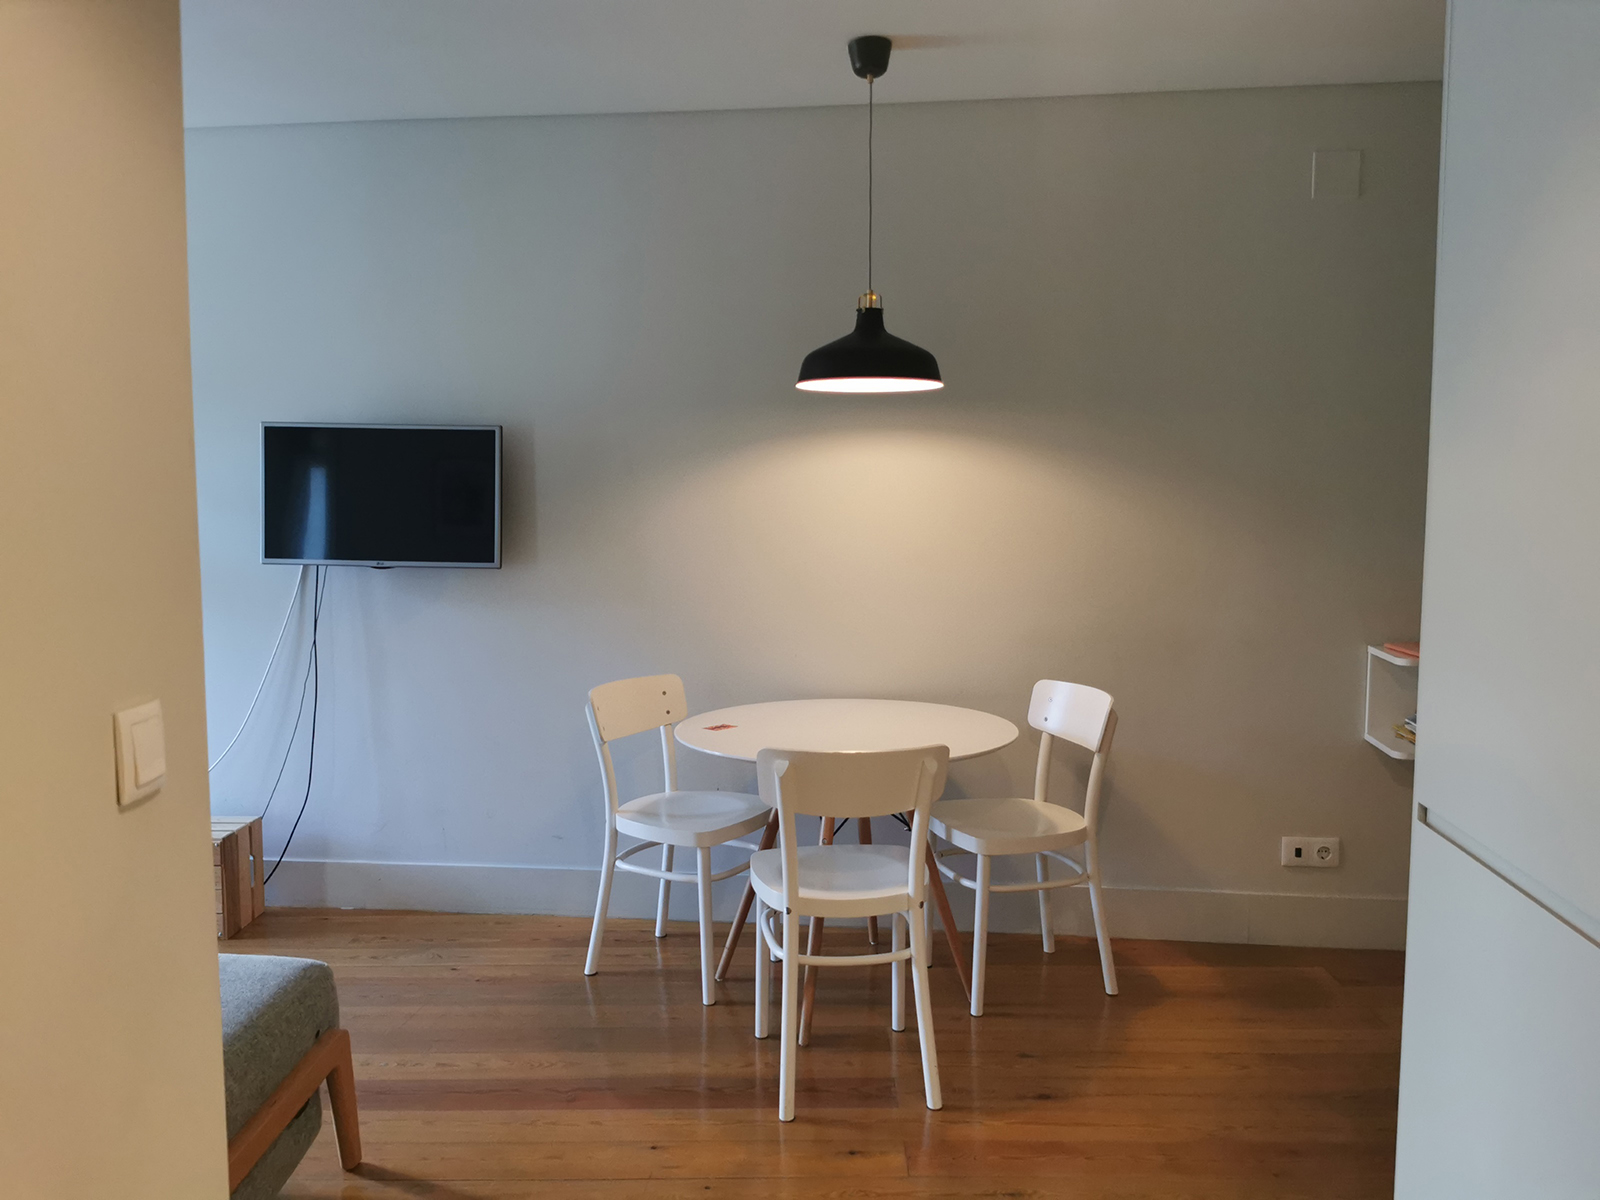 1 bedroom apartment furnished and equipped in Rua da Boavista / Cais do Sodré – Opportunity!